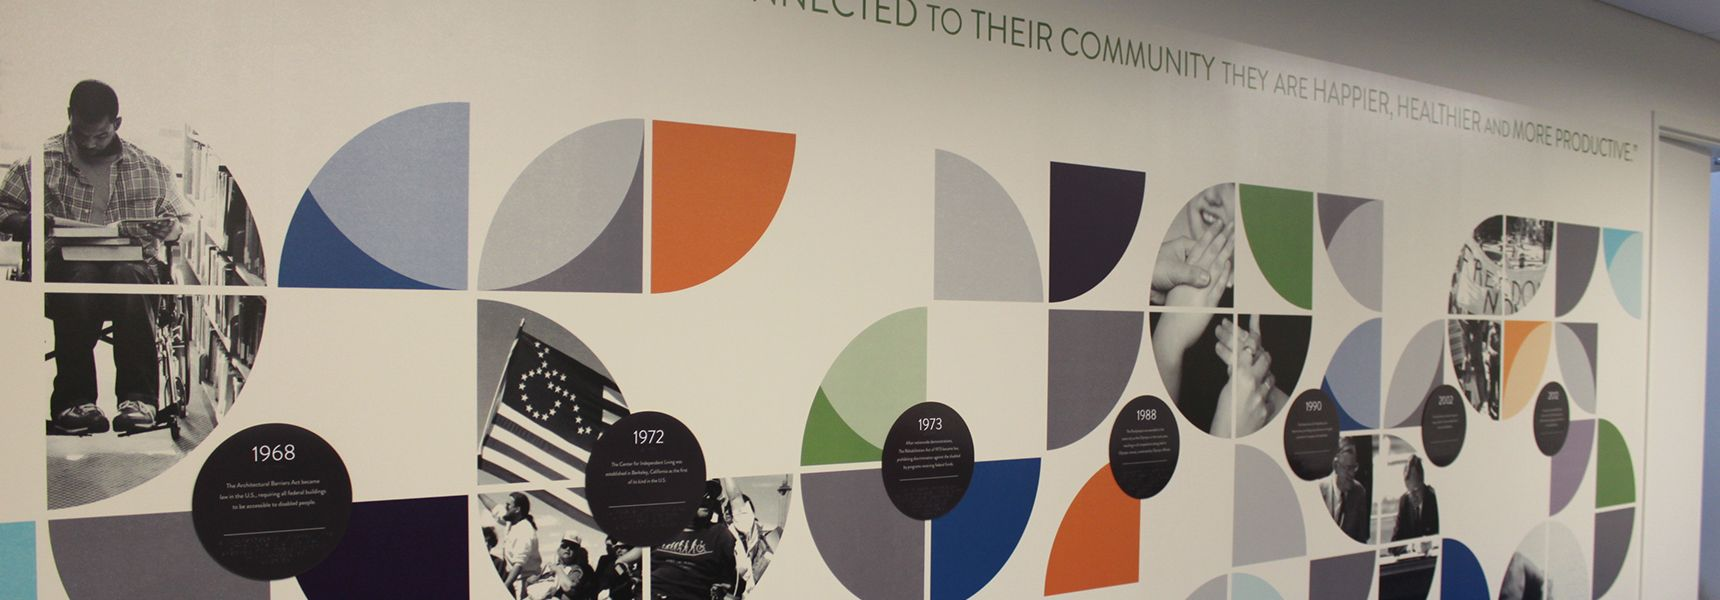 Wall illustrating the history of the Disability Movement in dates and photos